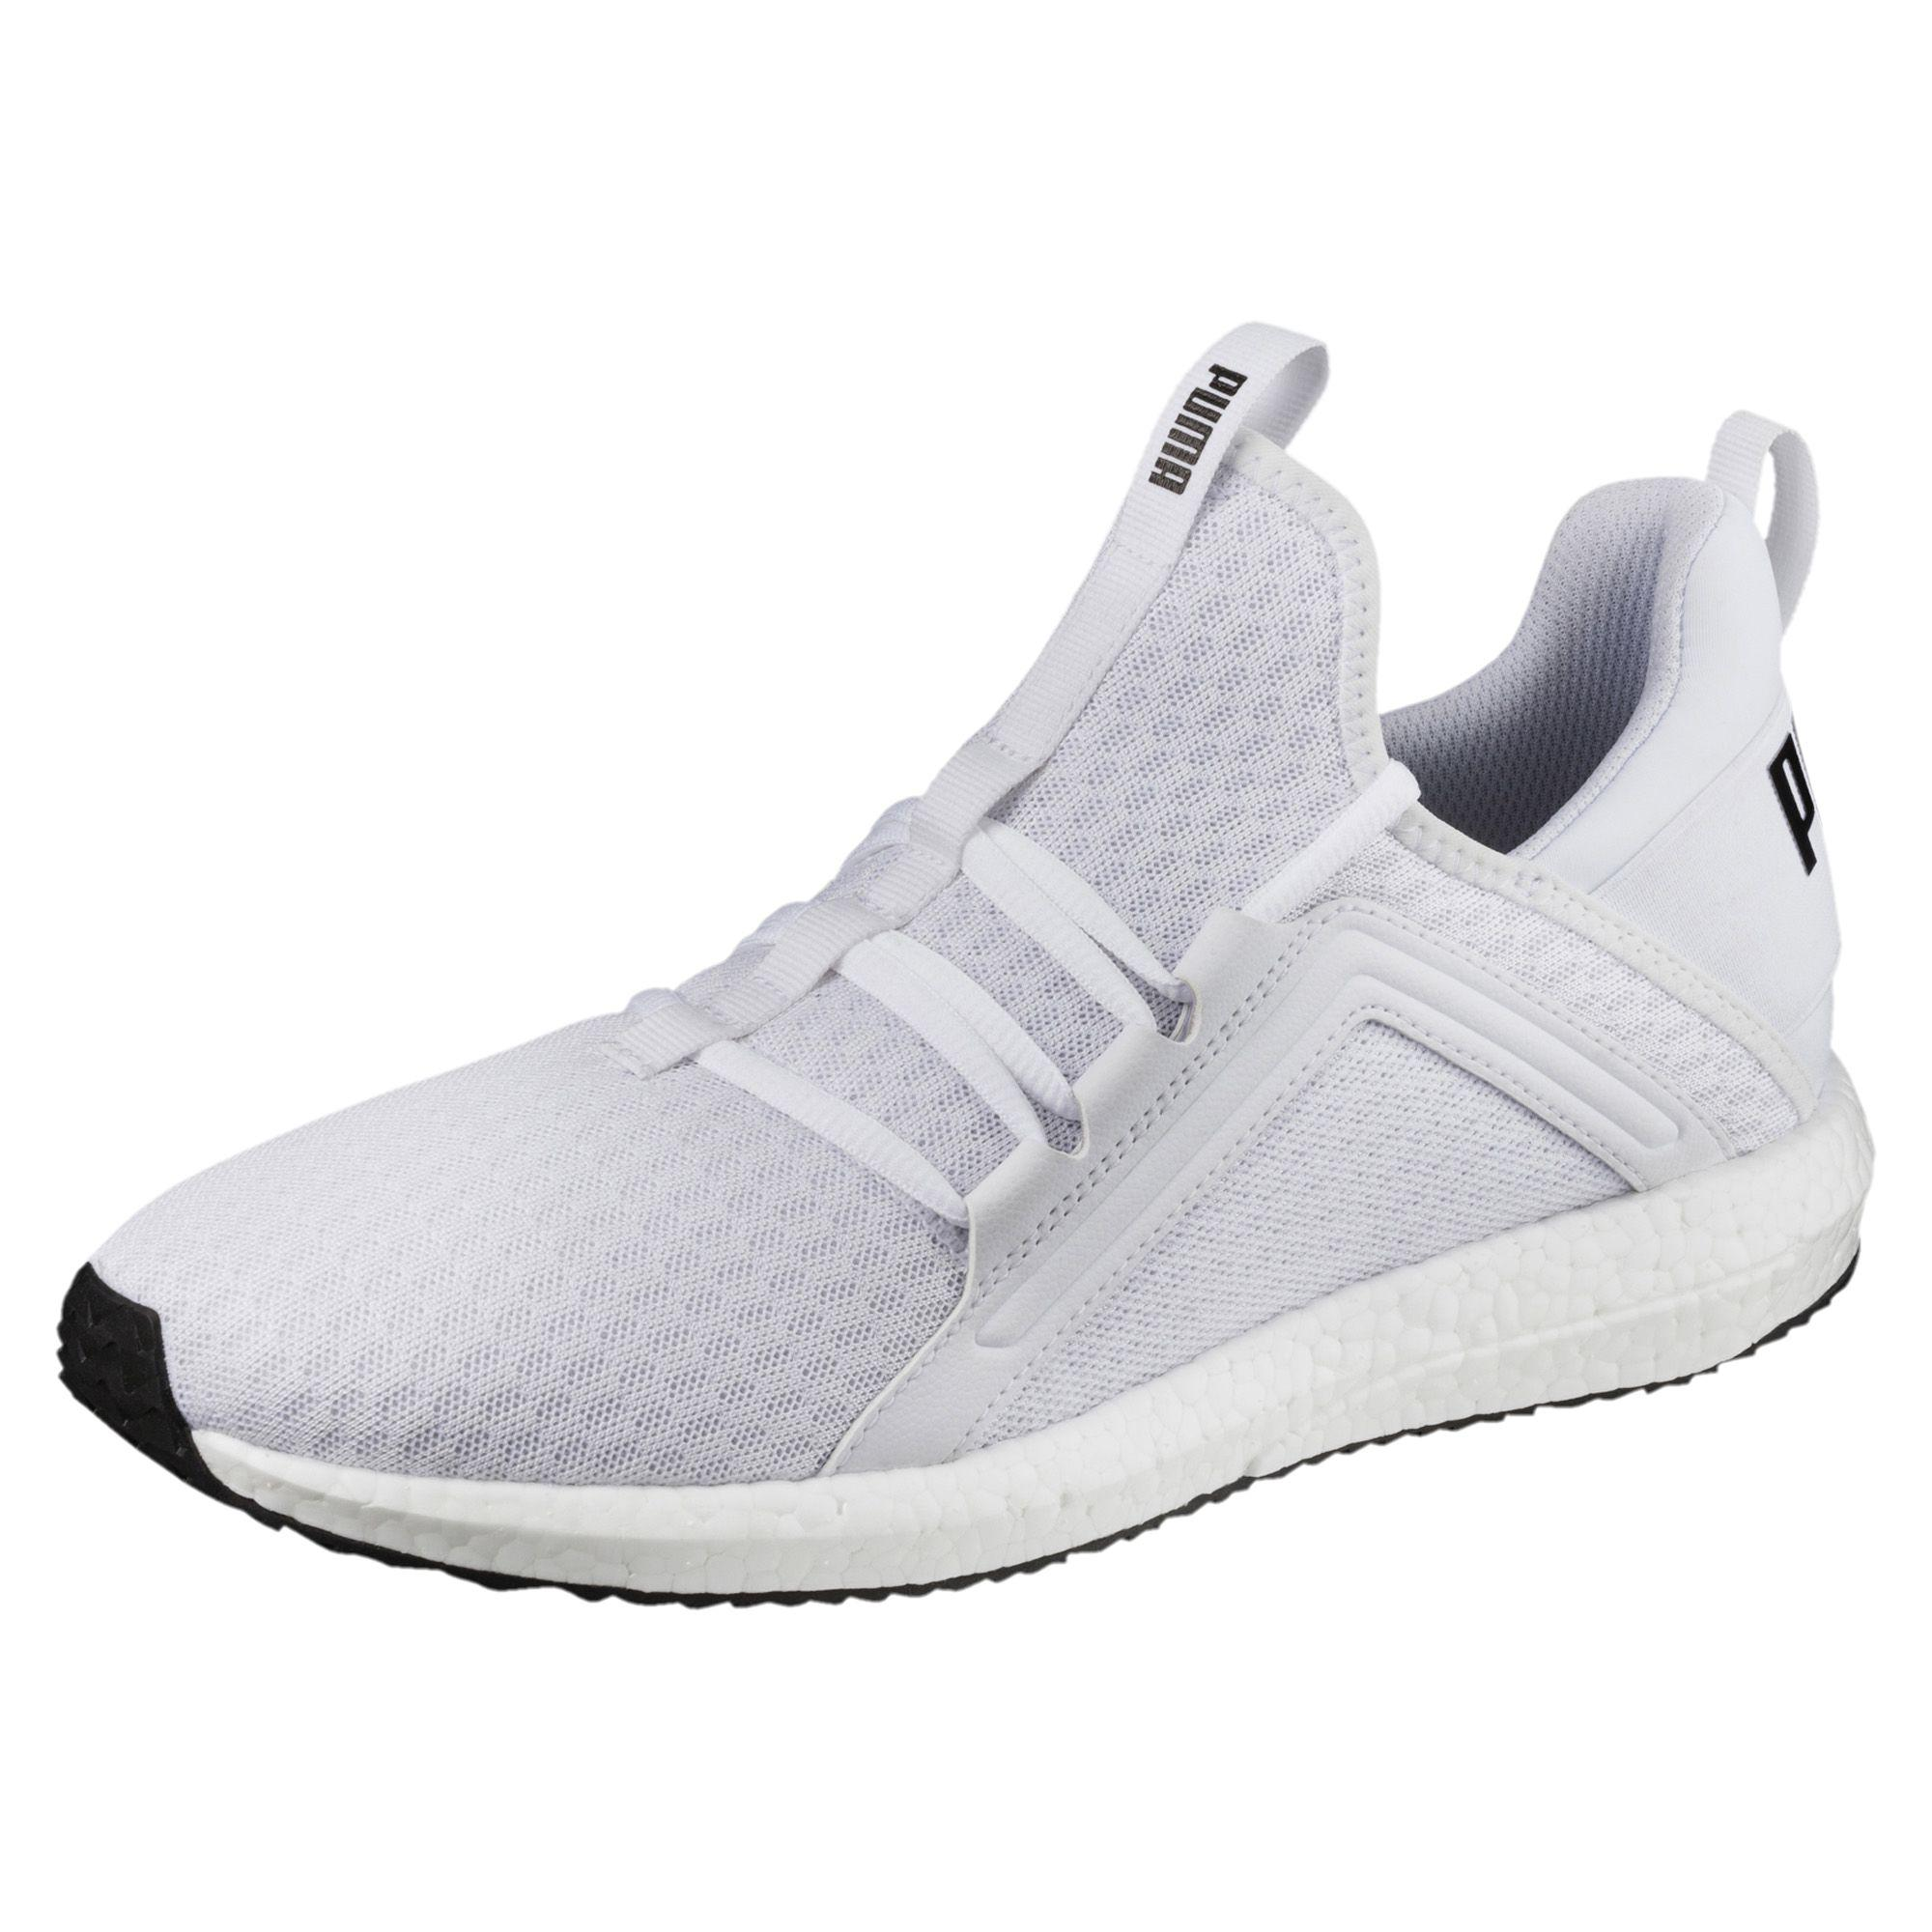 Lyst - Puma Mega Nrgy Men s Trainers in White for Men cd9a76881